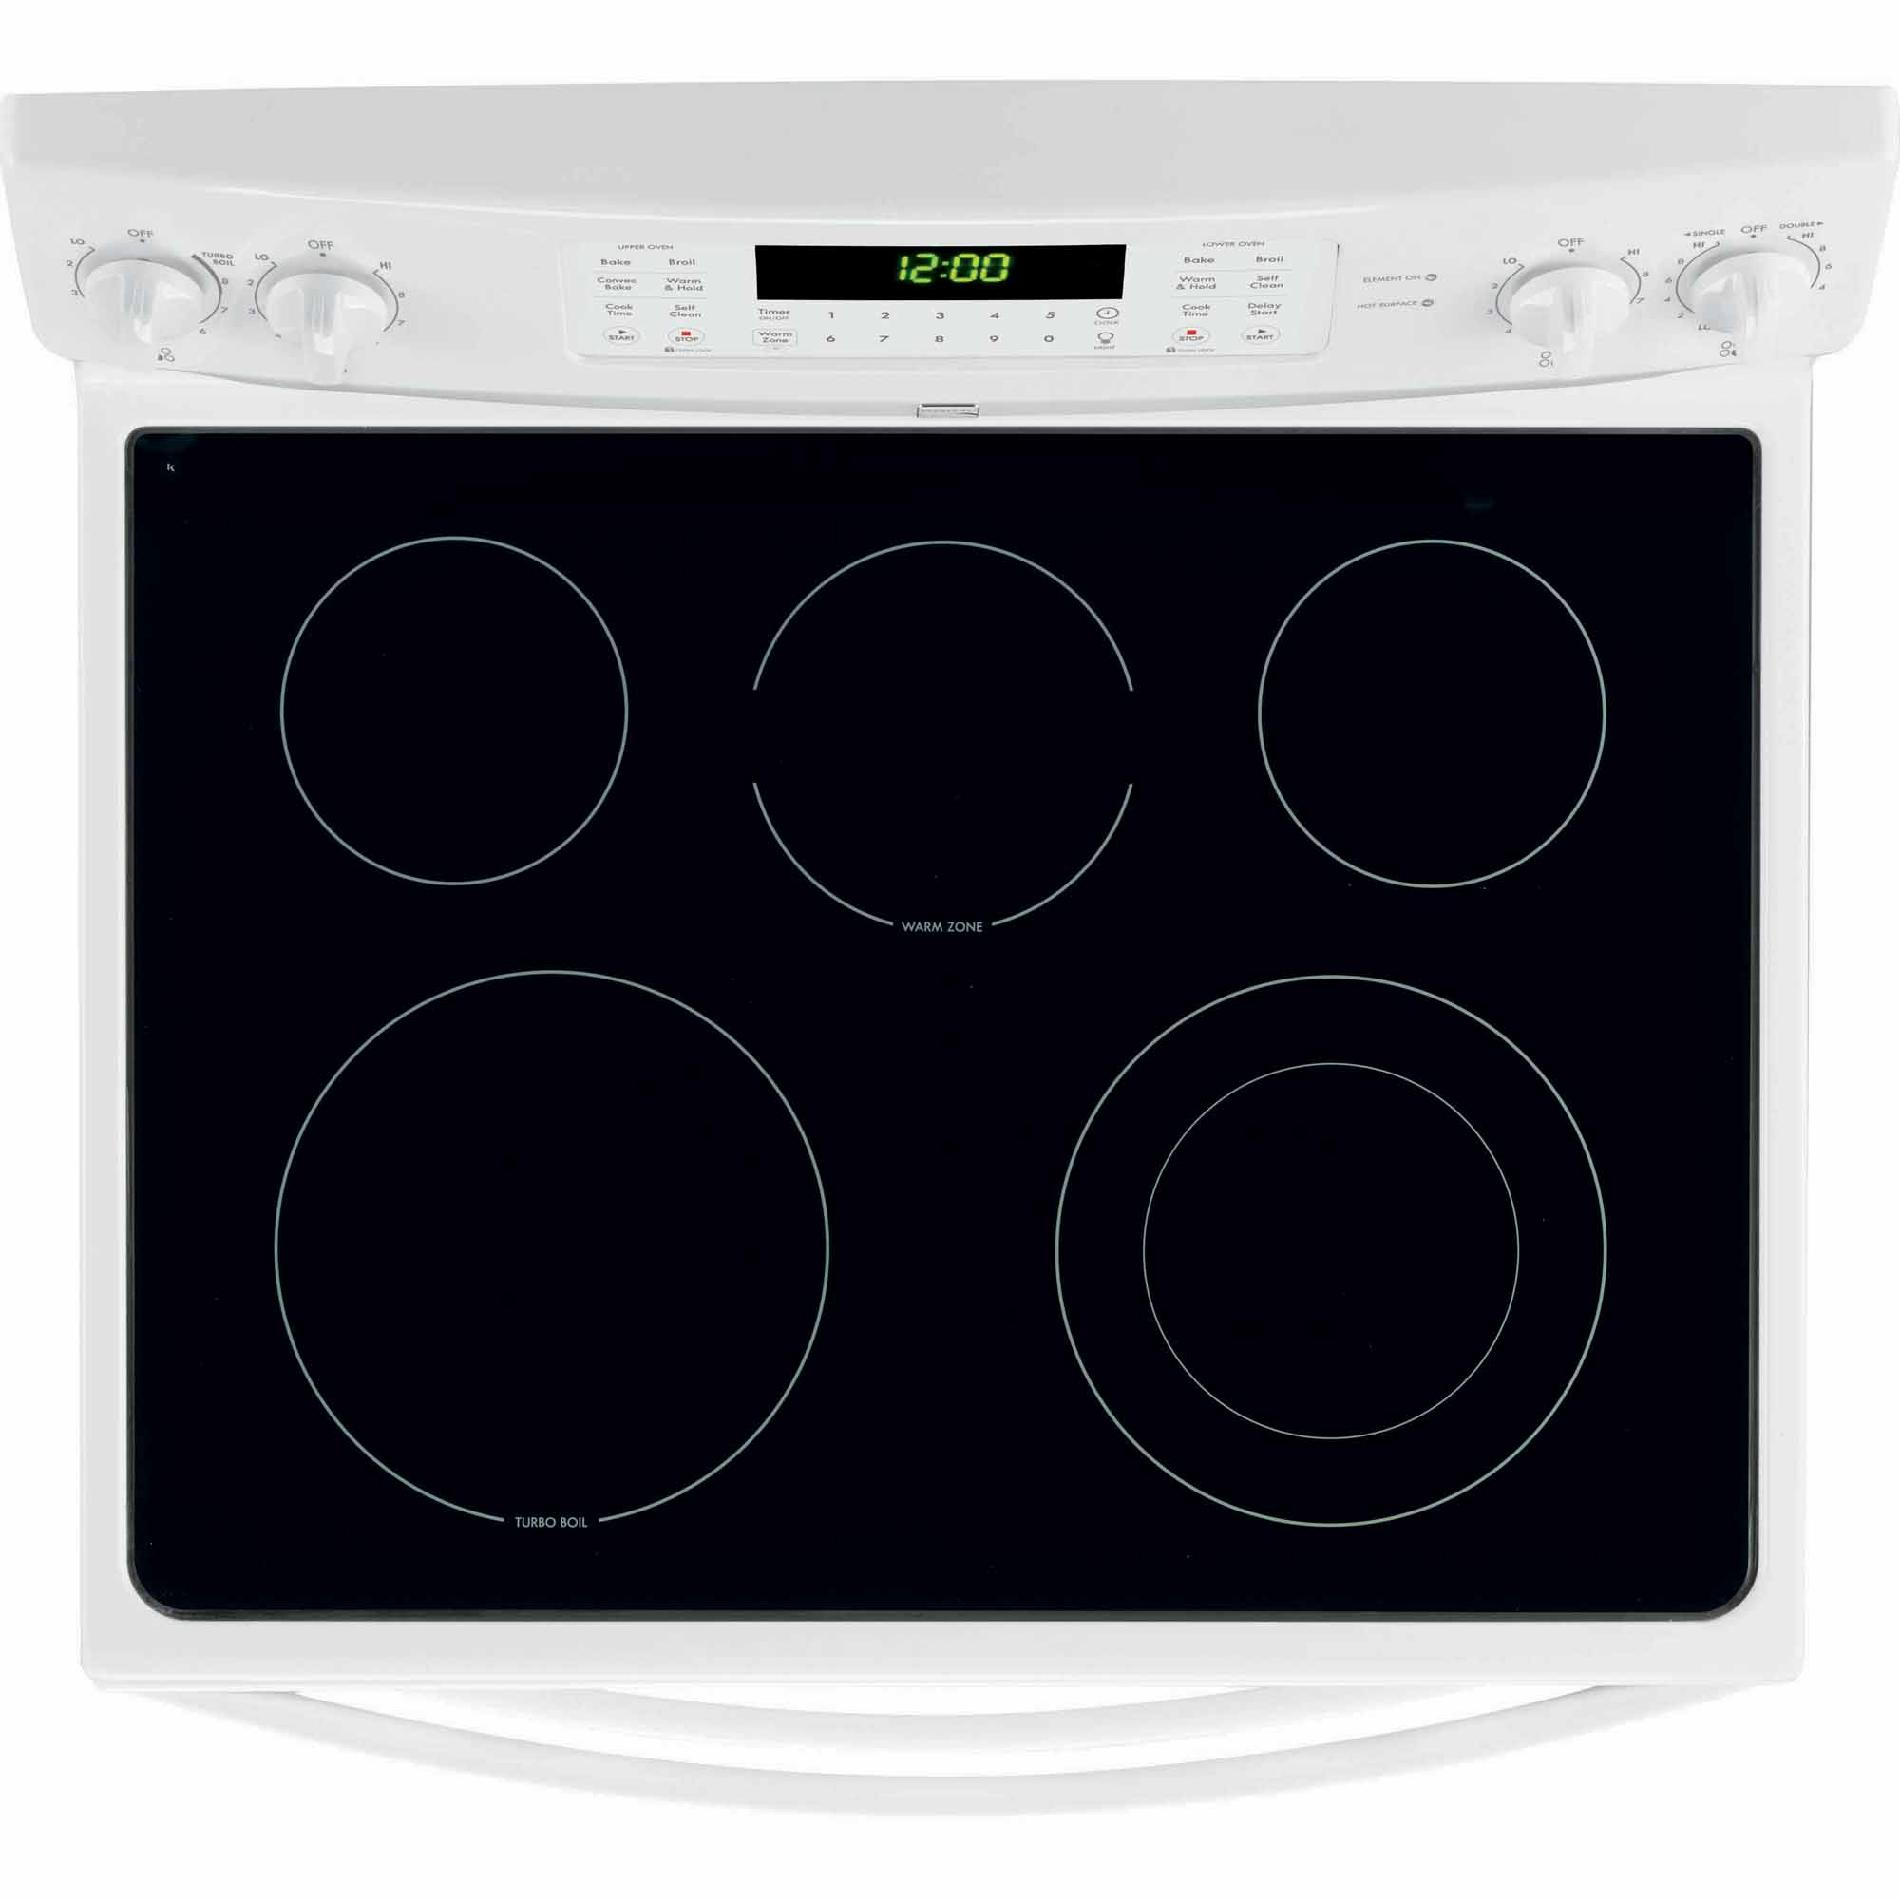 Kenmore 7.2 cu. ft. Double-Oven Electric Range w/ Convection - White